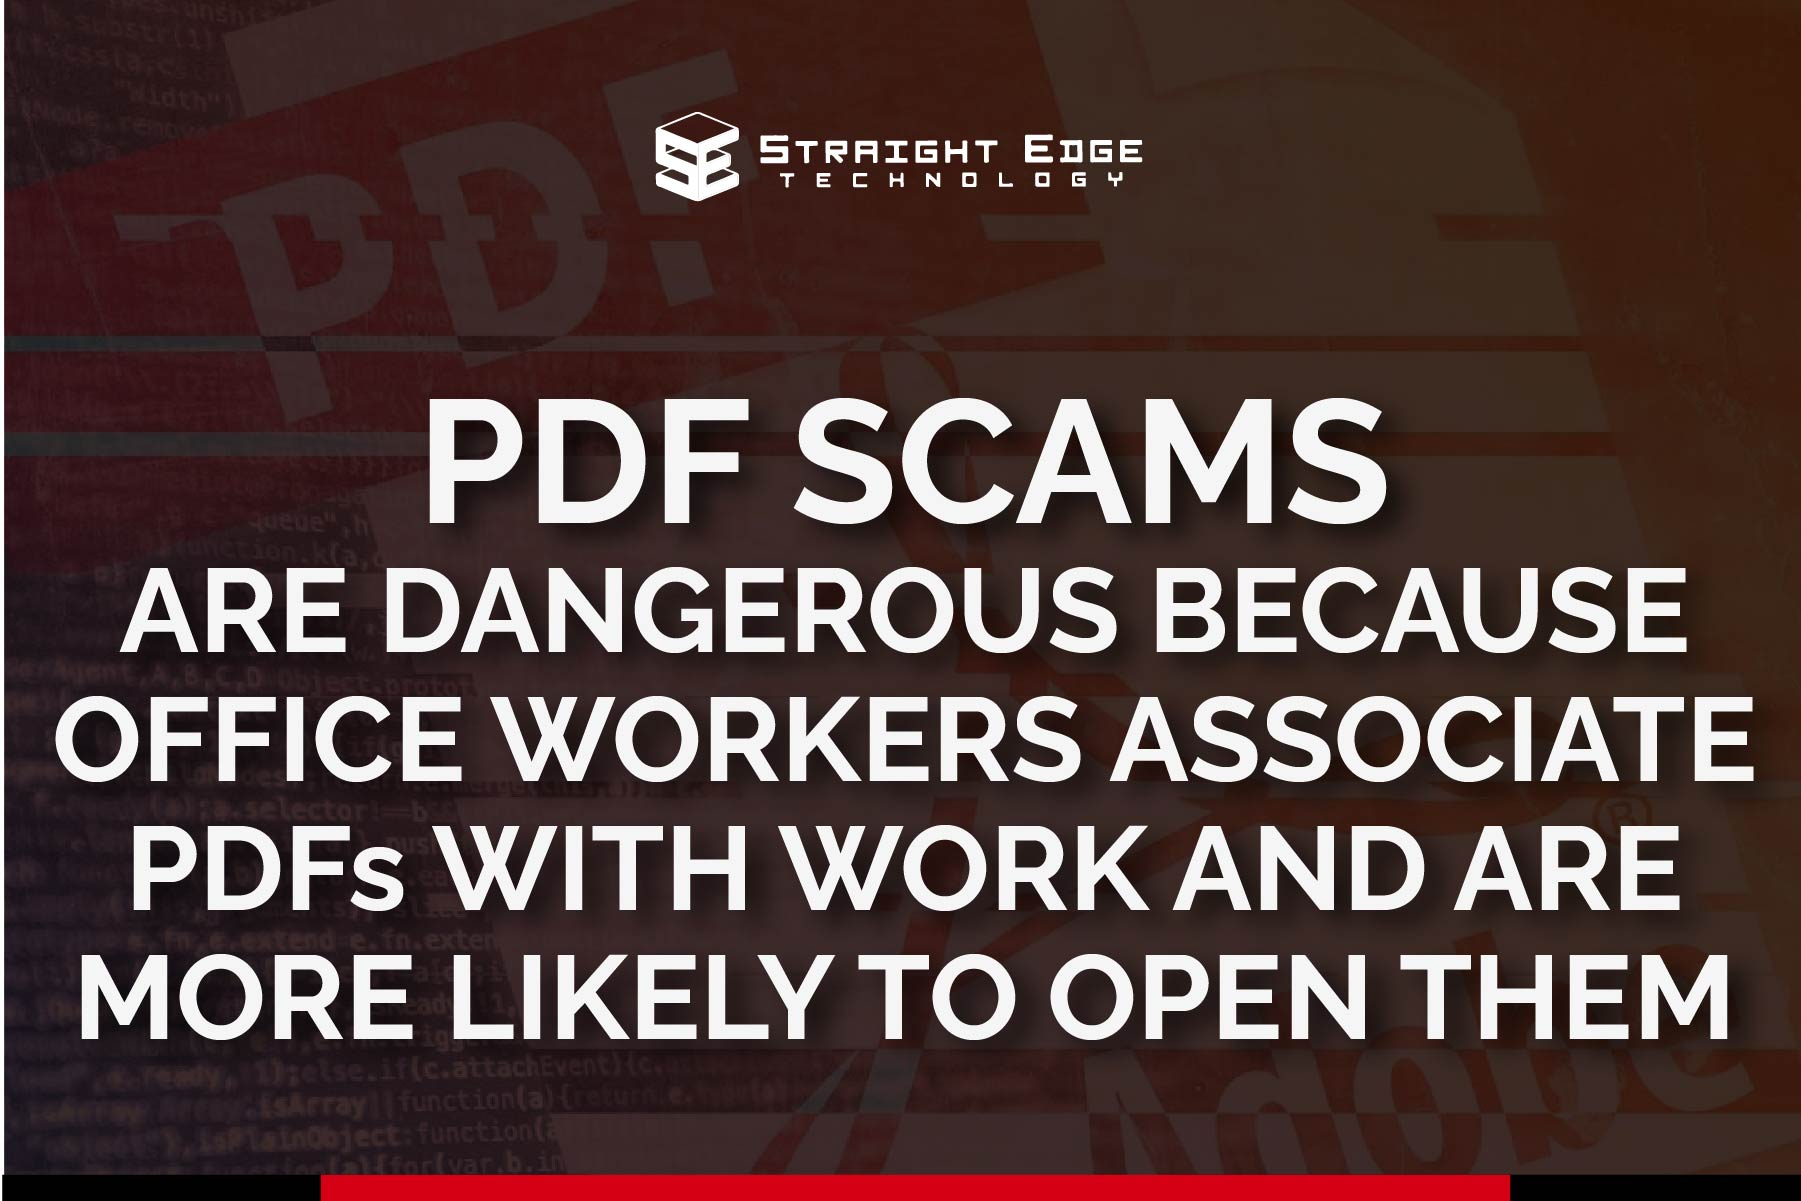 PDF scams are dangerous because we associate PDFs with work